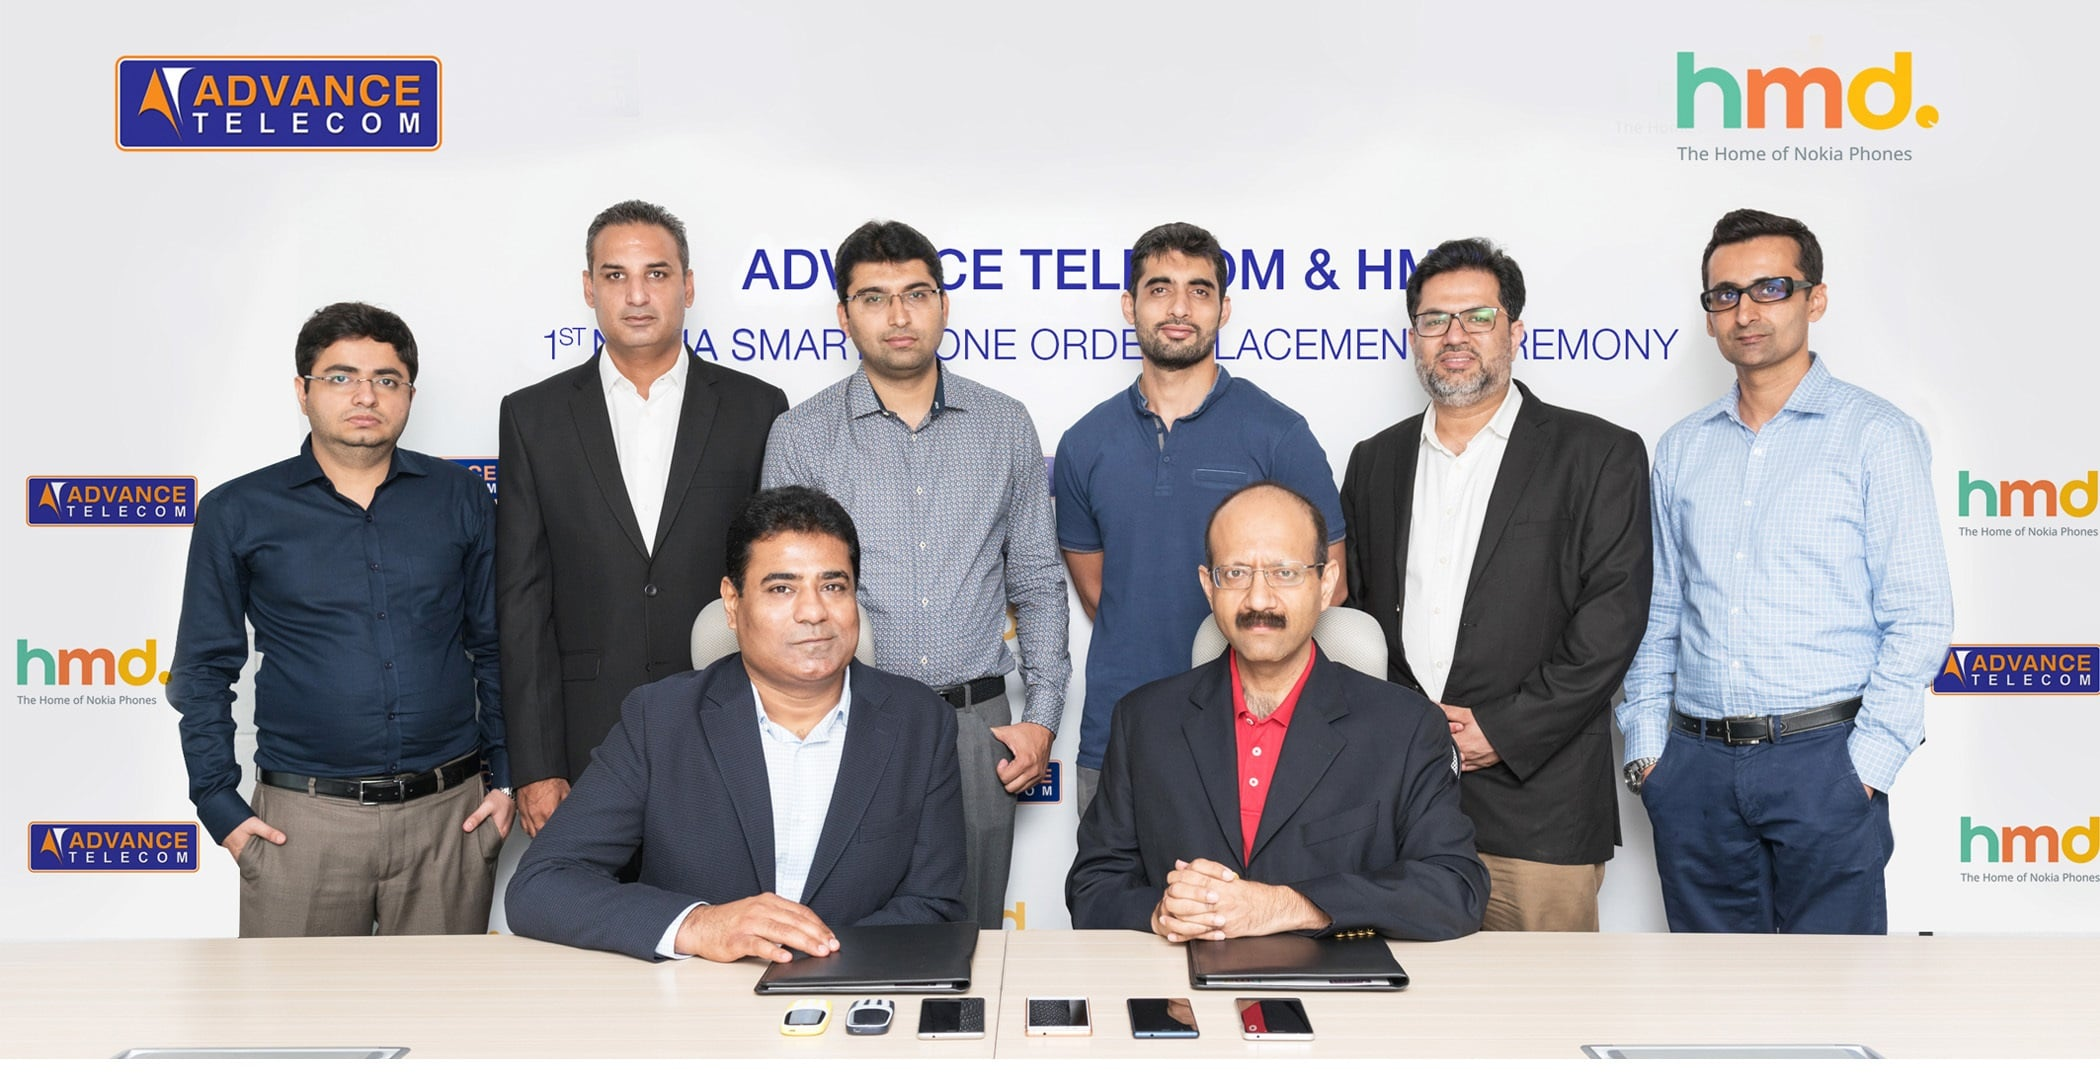 Advance Telecom recently announced that it will be launching Nokia Smart Phones in Pakistan as the official distribution partner of HMD Global-The Home